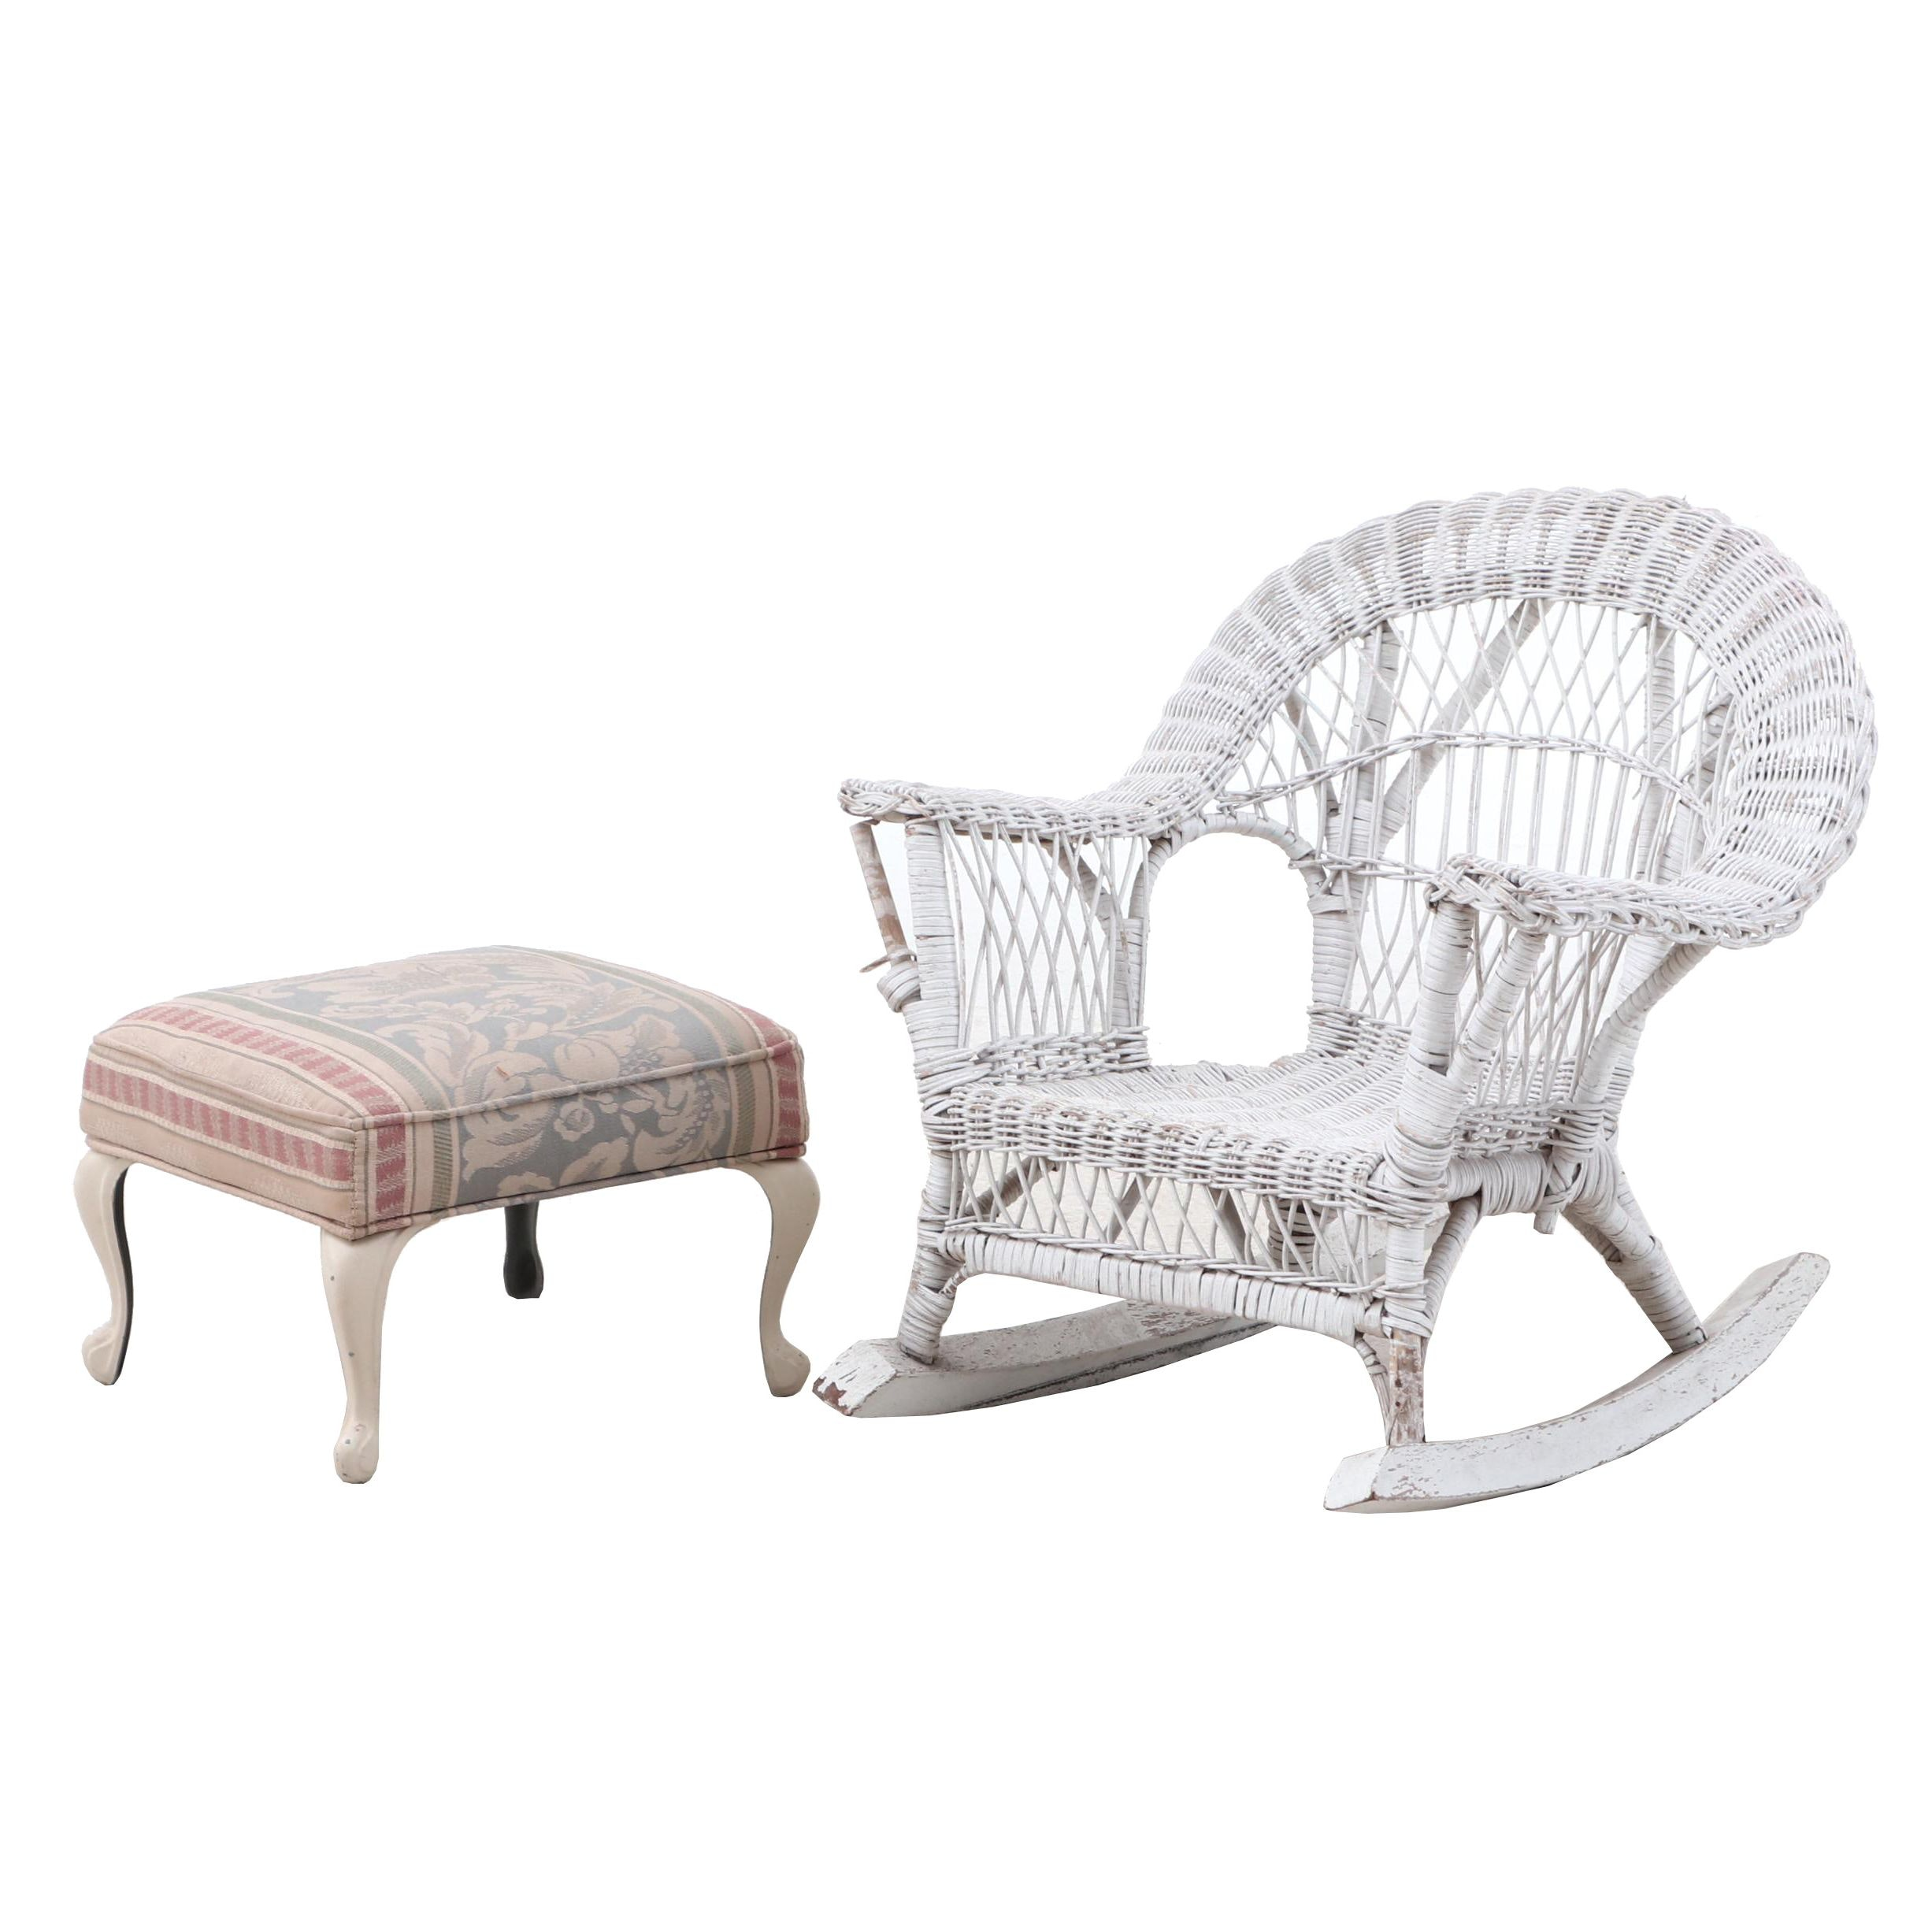 Vintage Miniature Wicker Rocking Chair and Ottoman